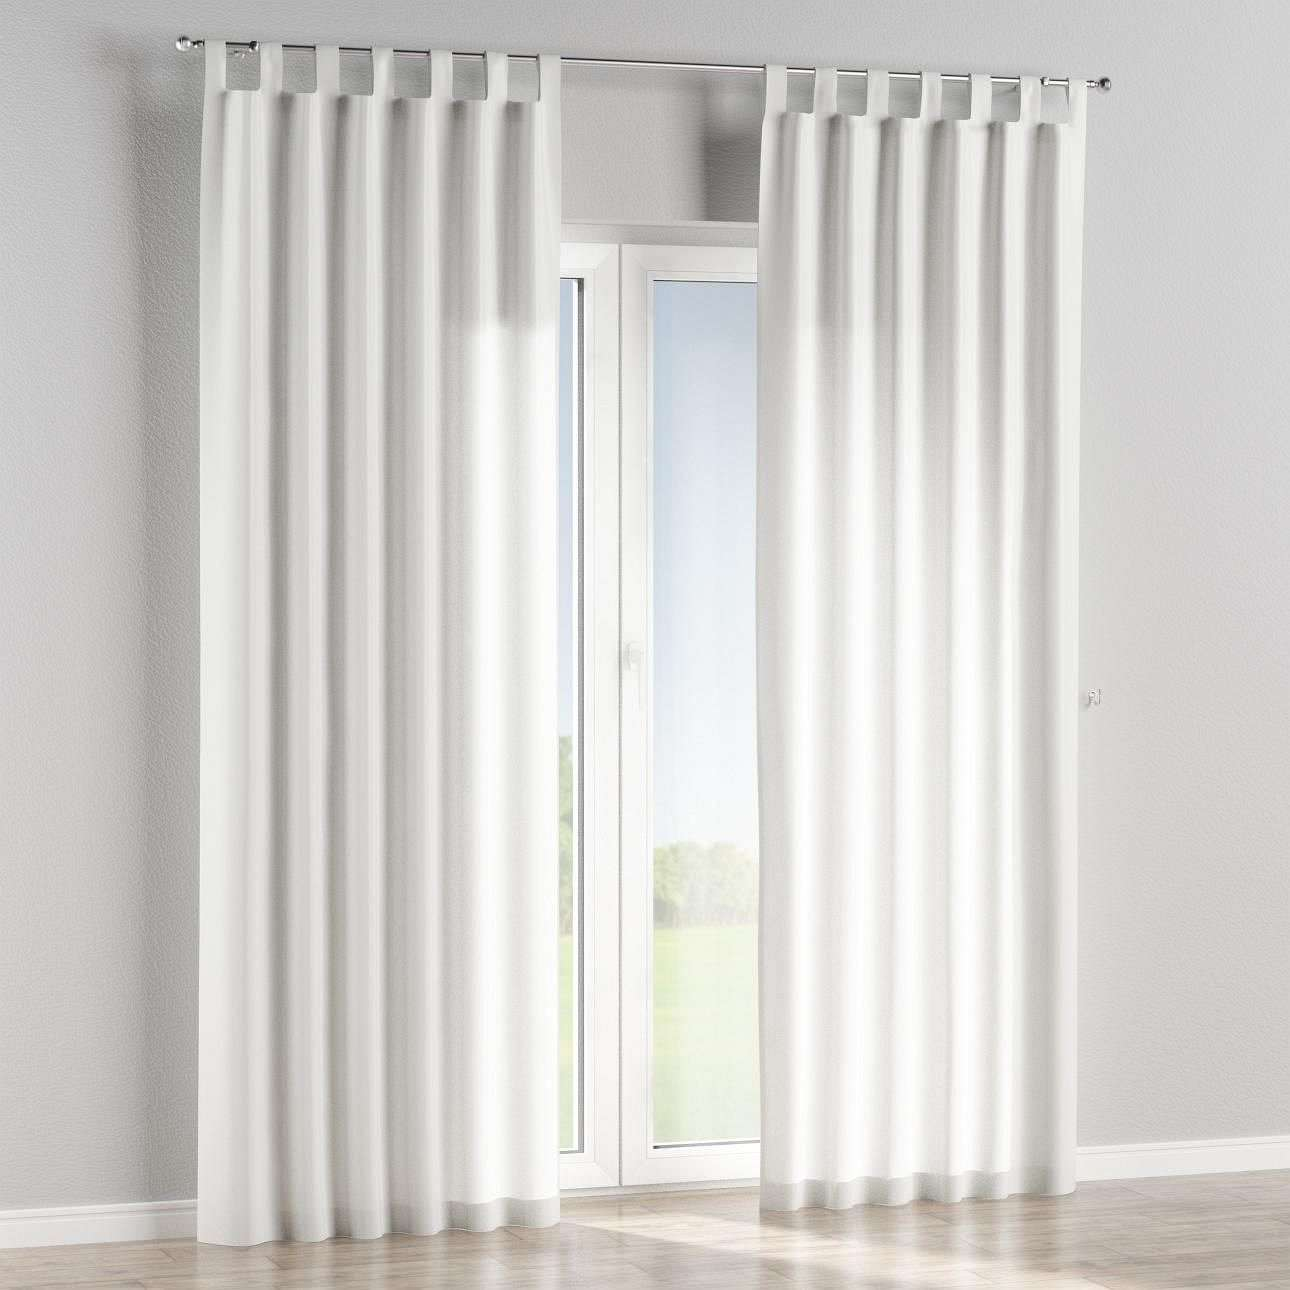 Tab top curtains in collection Norge, fabric: 140-78